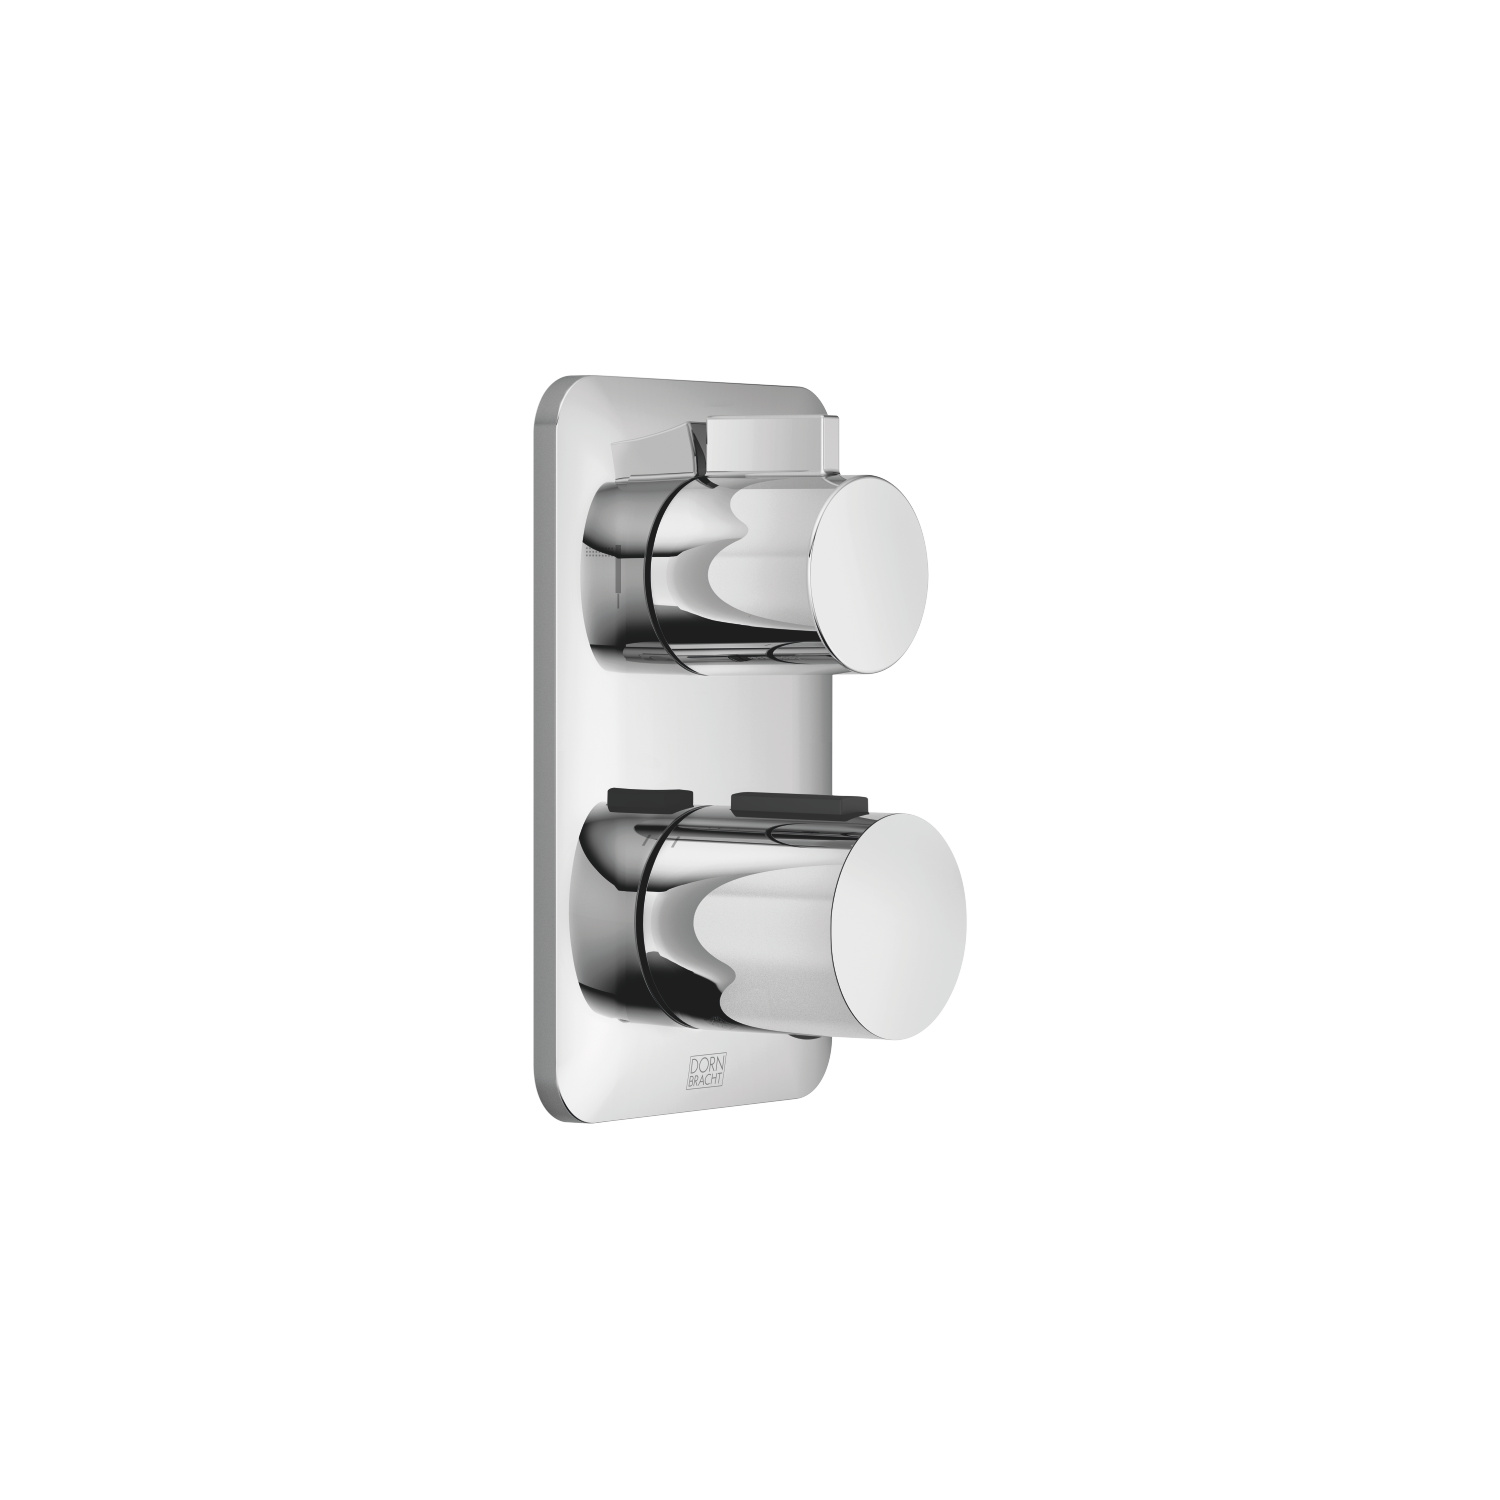 Concealed thermostat with two-way volume control - polished chrome - 36 426 845-00 0010